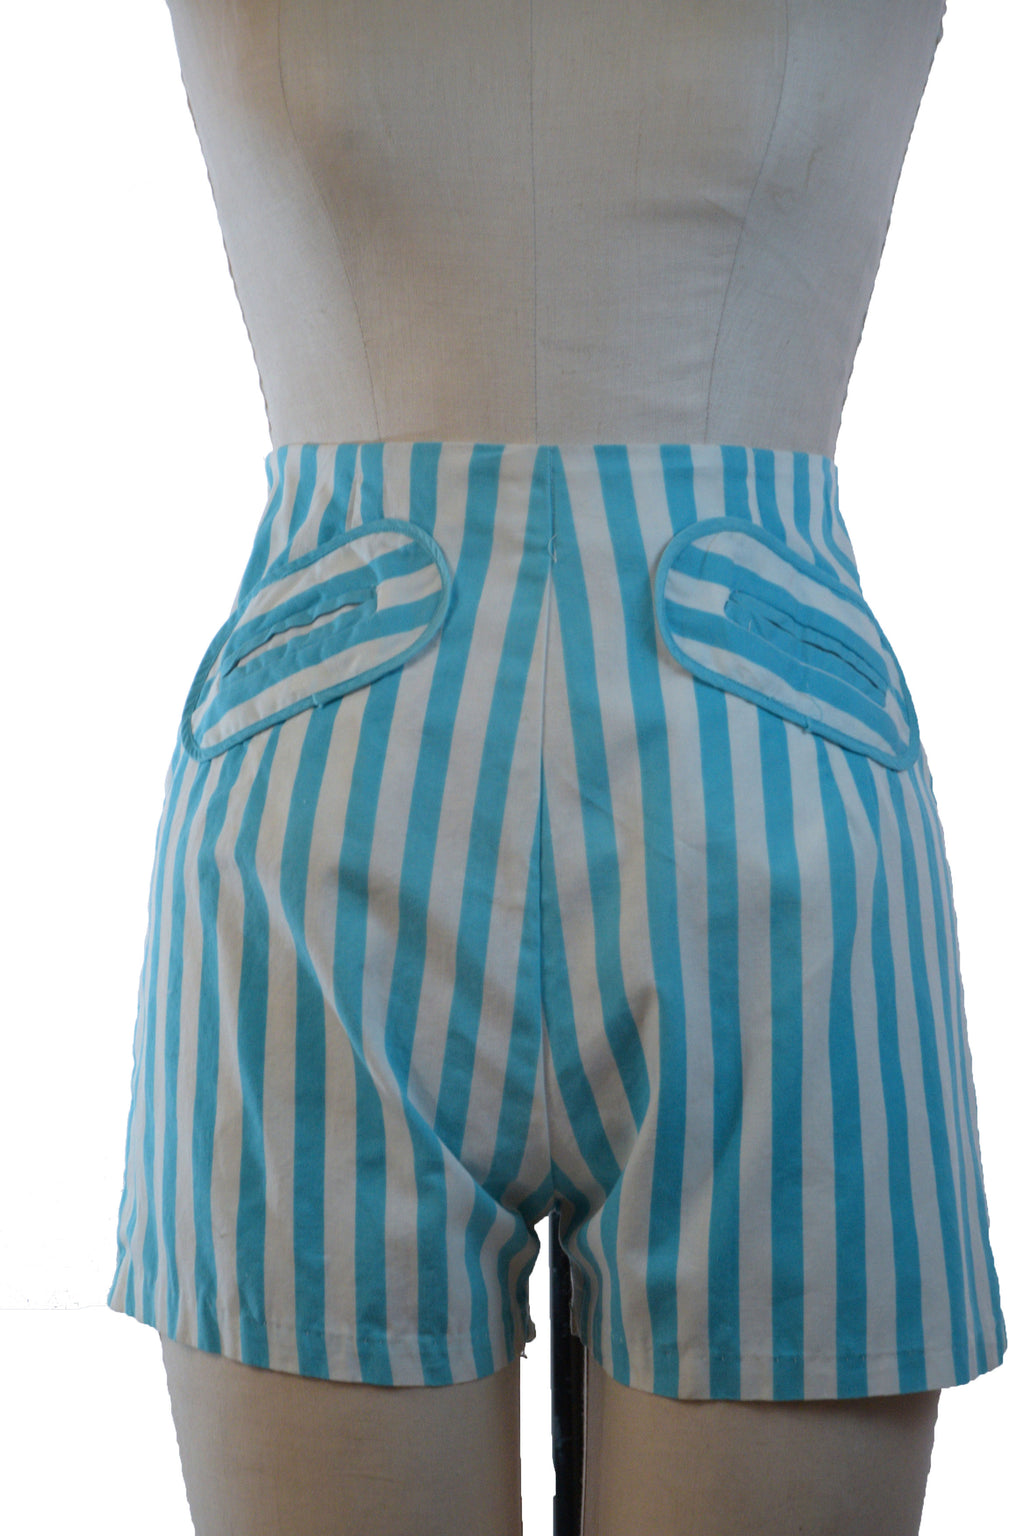 Sporty 1950s Bright Blue and White Striped Cotton Shorts with High Back